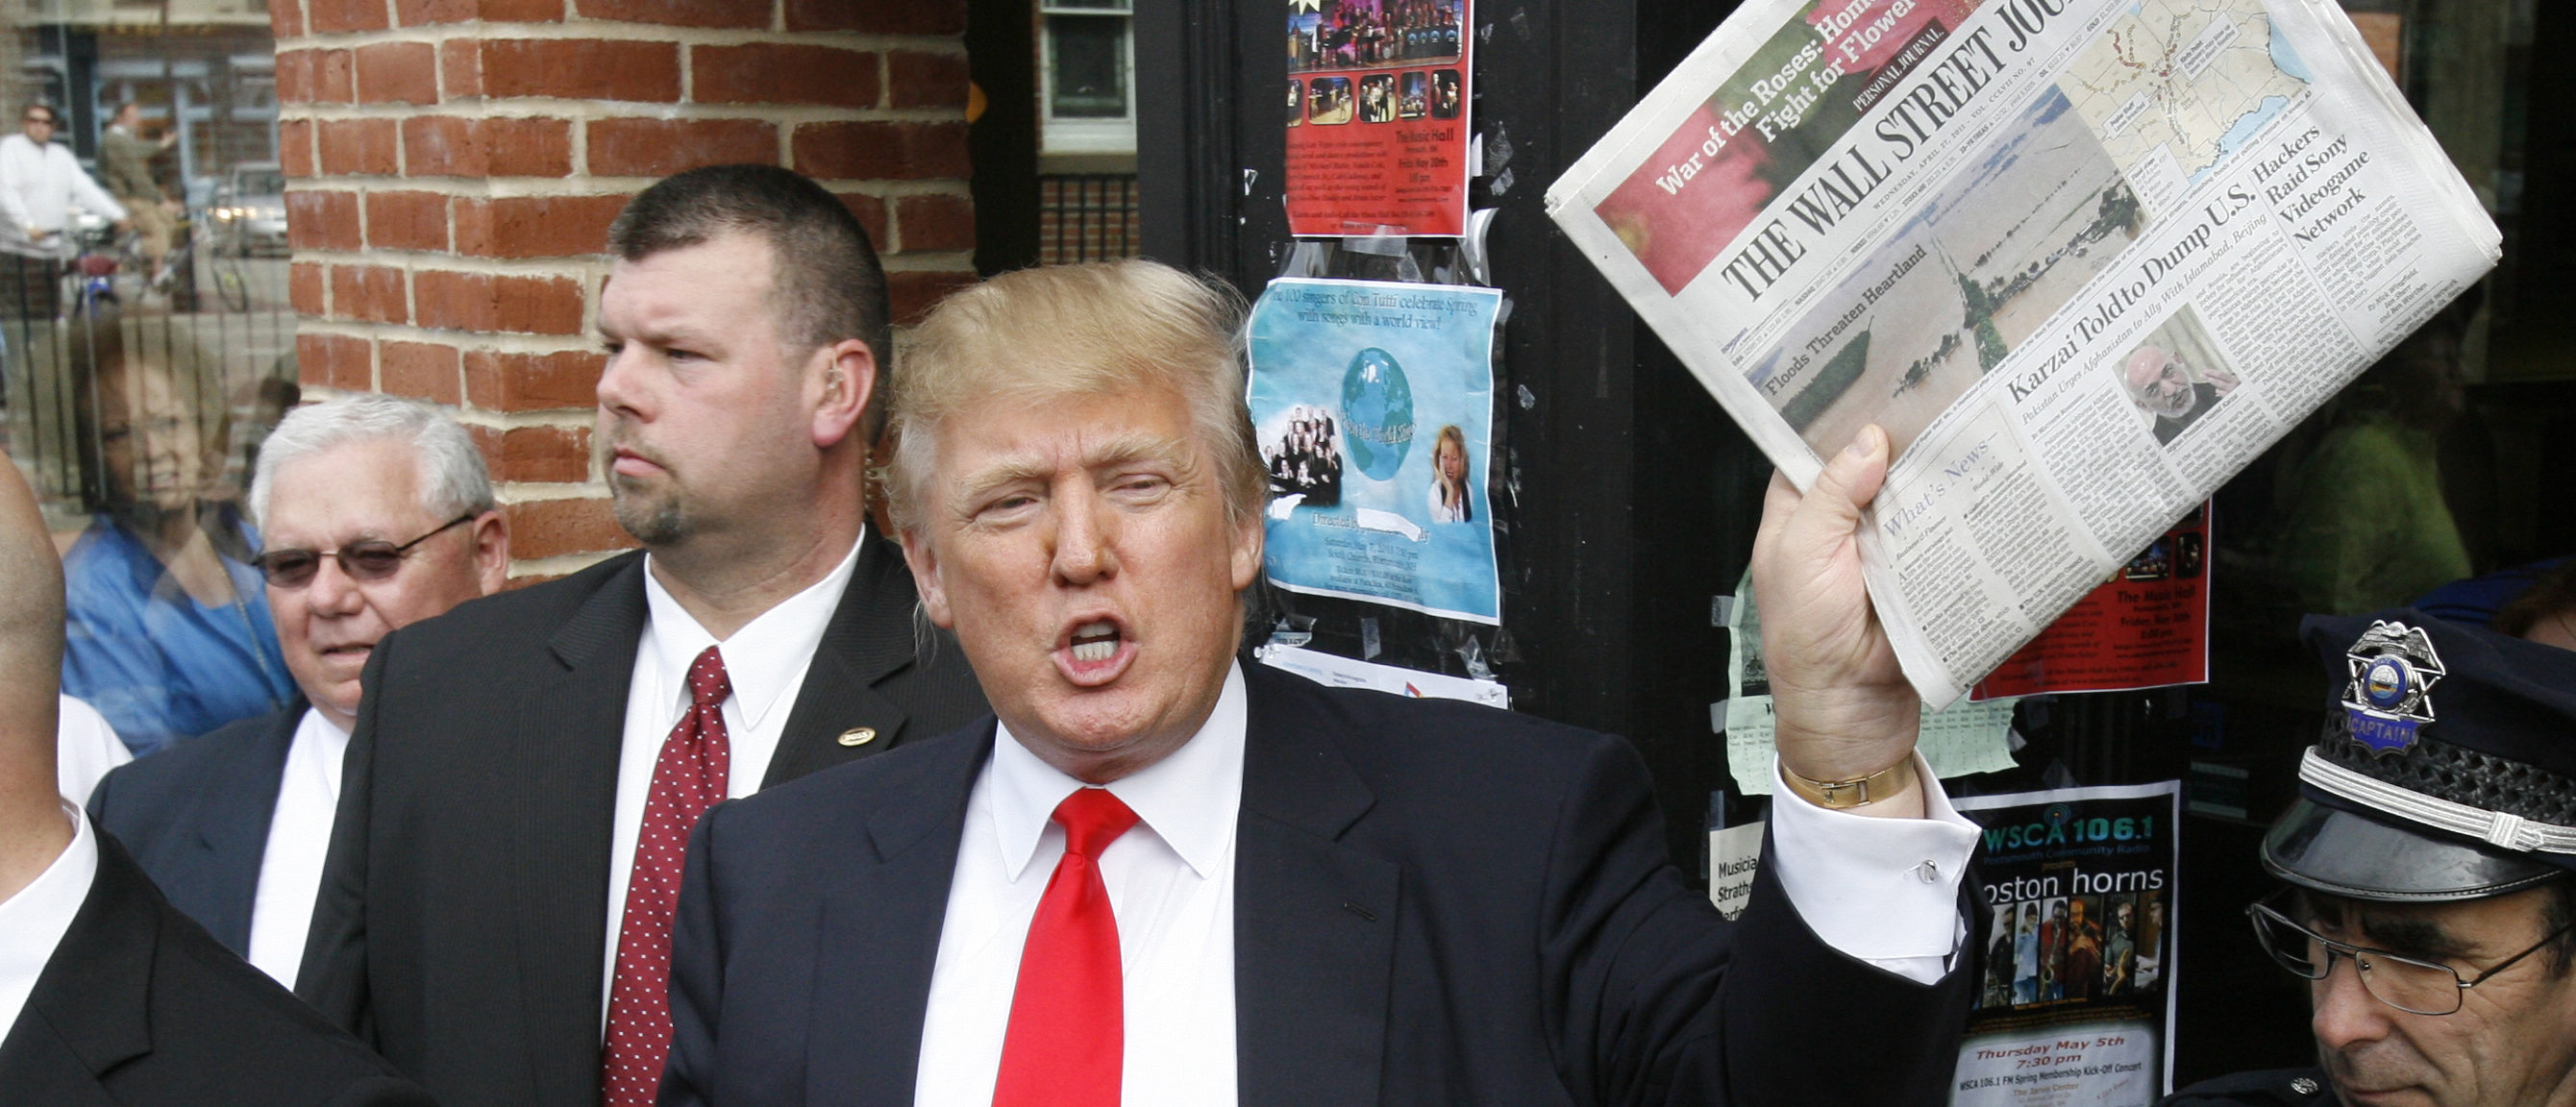 FILE -- Donald Trump holds up a newspaper as he makes a reference to a story in it while walking through downtown Portsmouth, New Hampshire April 27, 2011. REUTERS/Joel Page